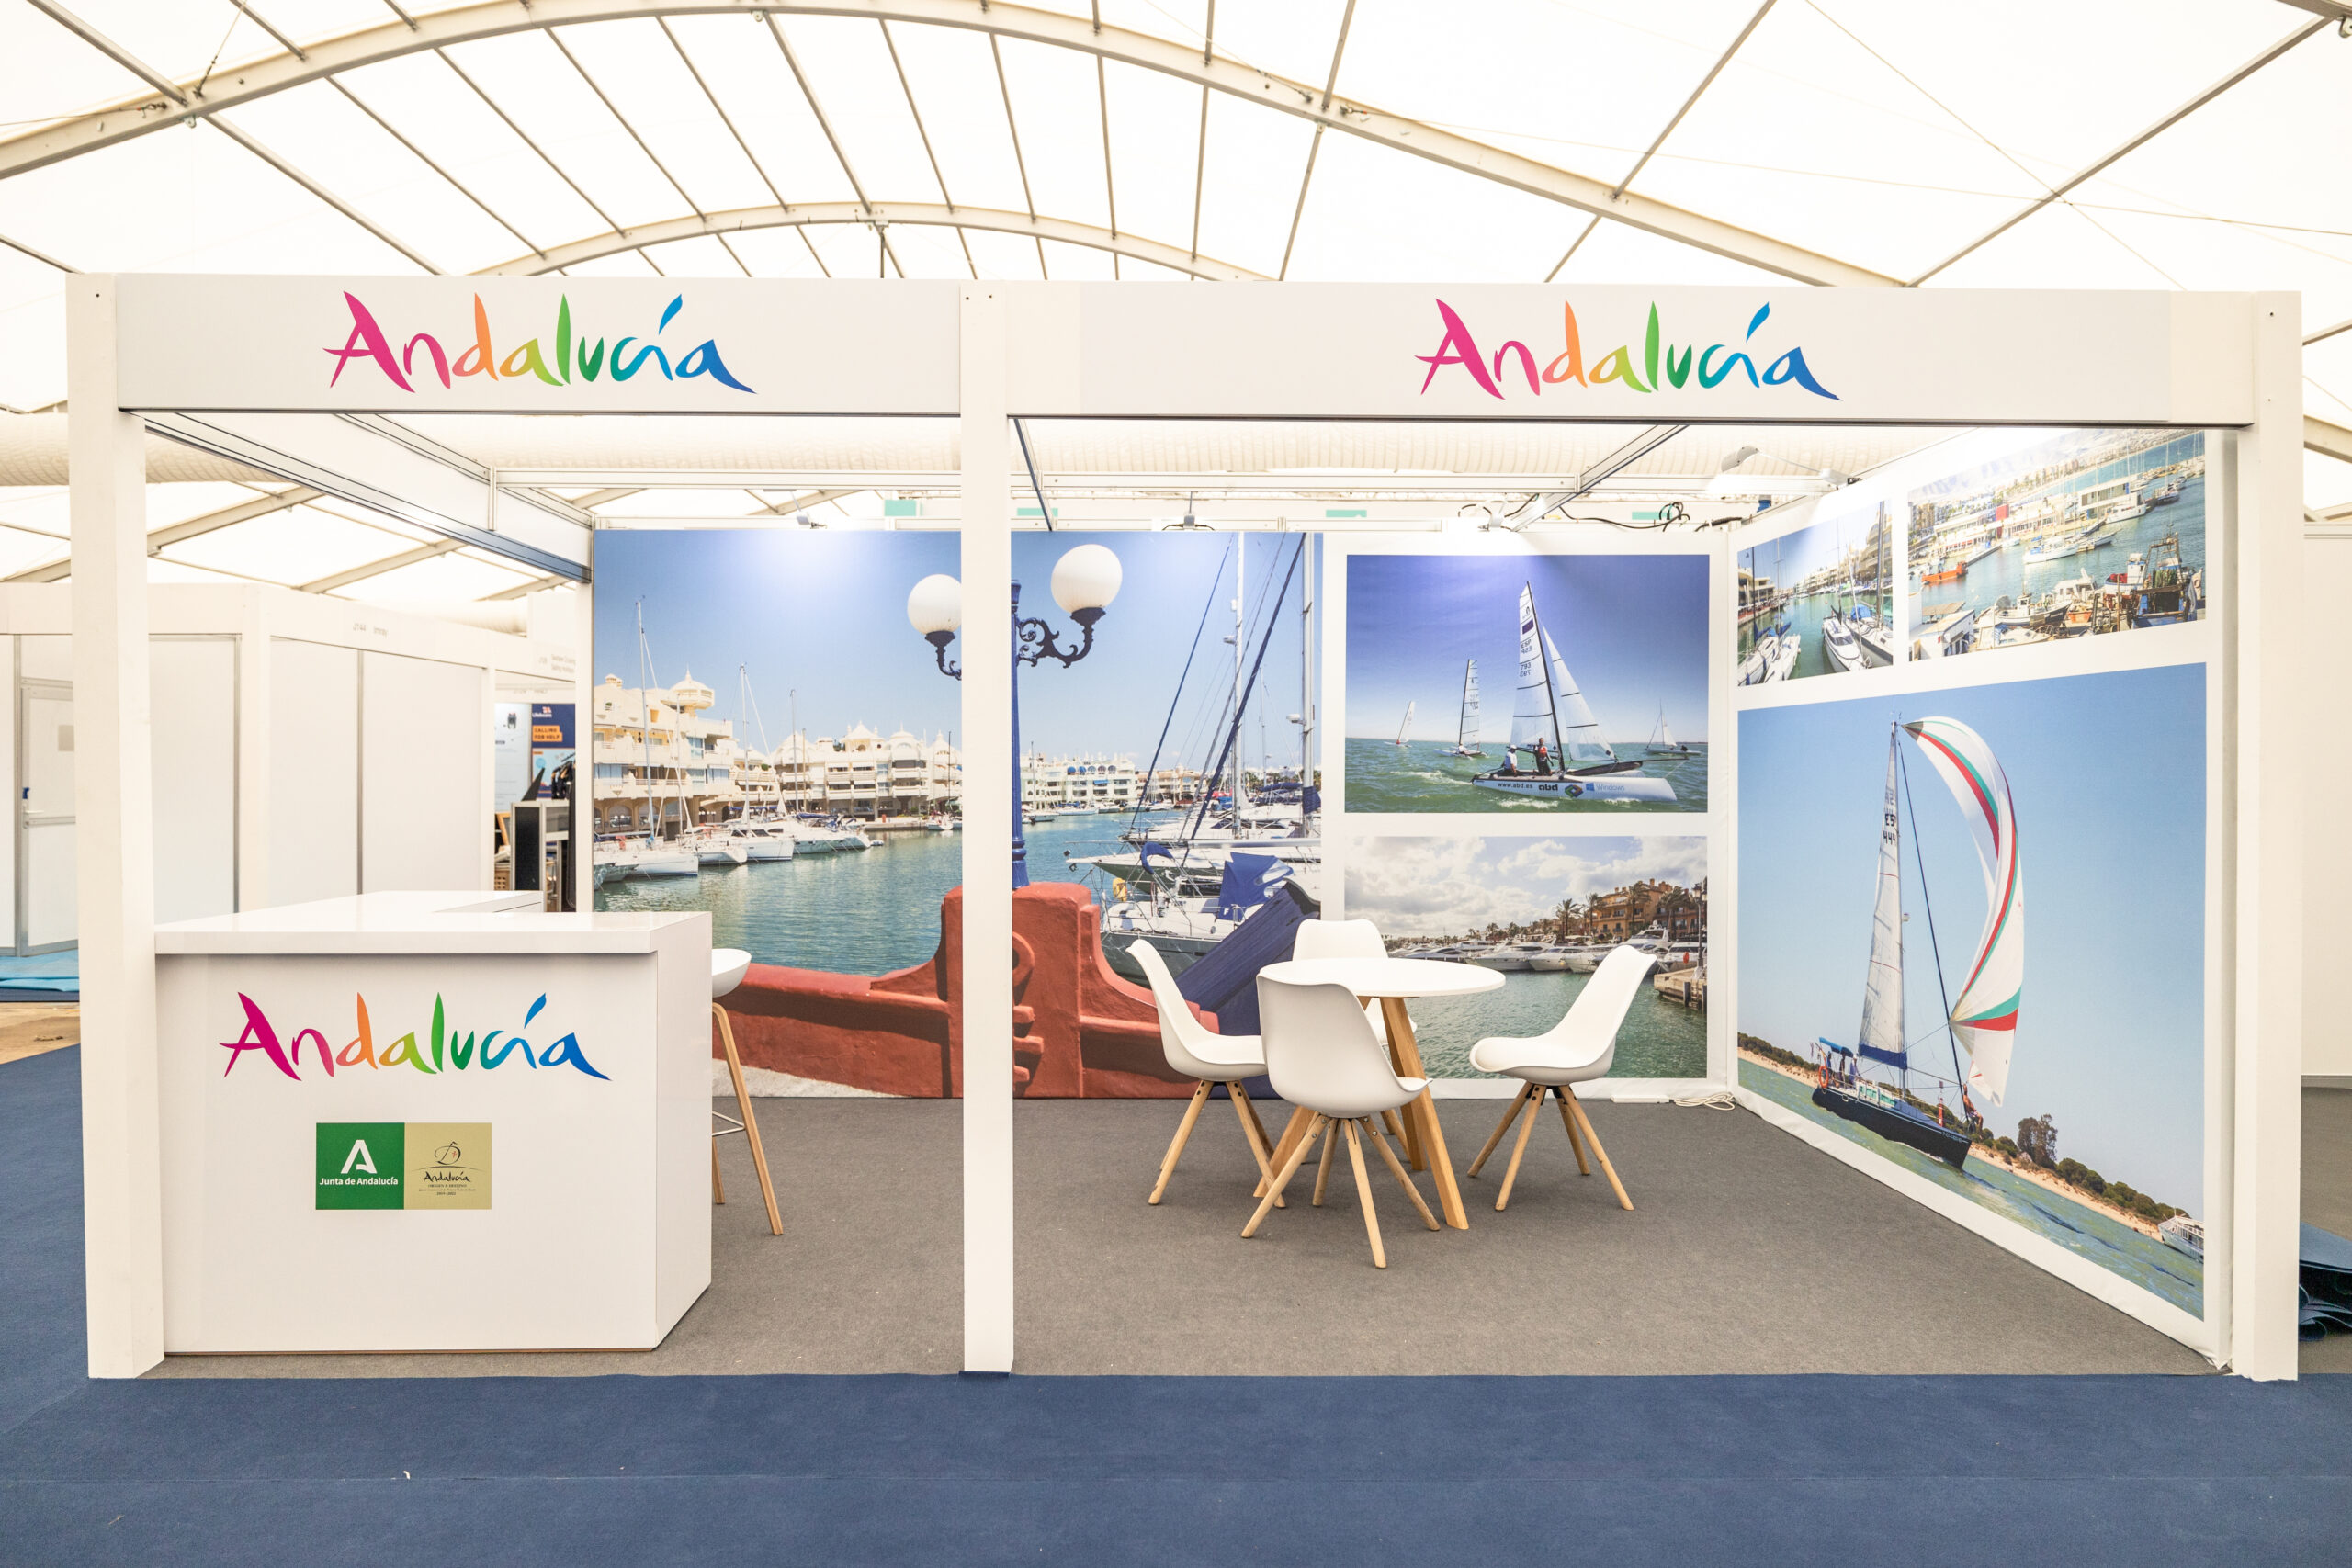 Stand Andalucia Southampton boat Show 2021